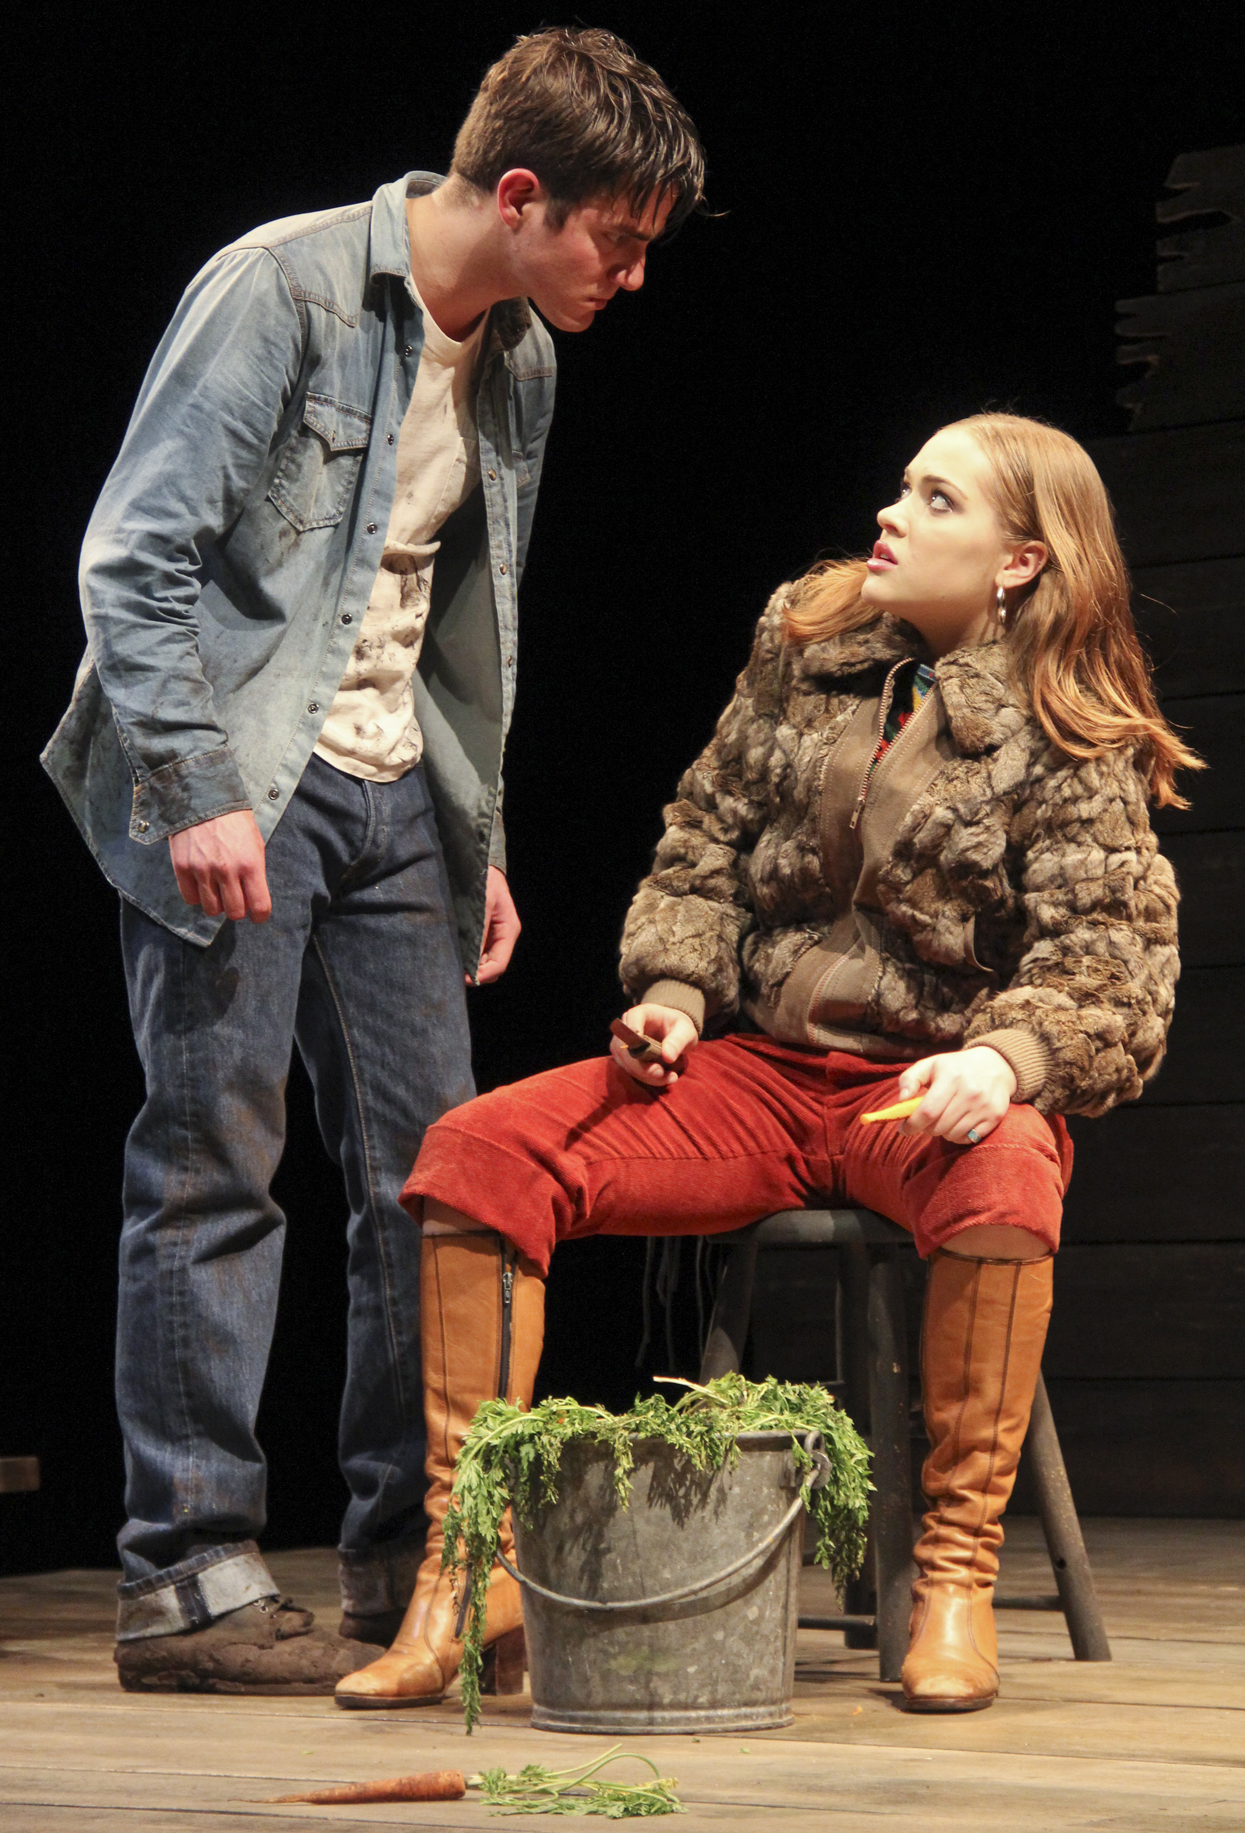 an analysis of buried child Buried child shepard, sam buried child summary & analysis characters dodge: in his late seventies thin and sickly, plagued by fits of cough.